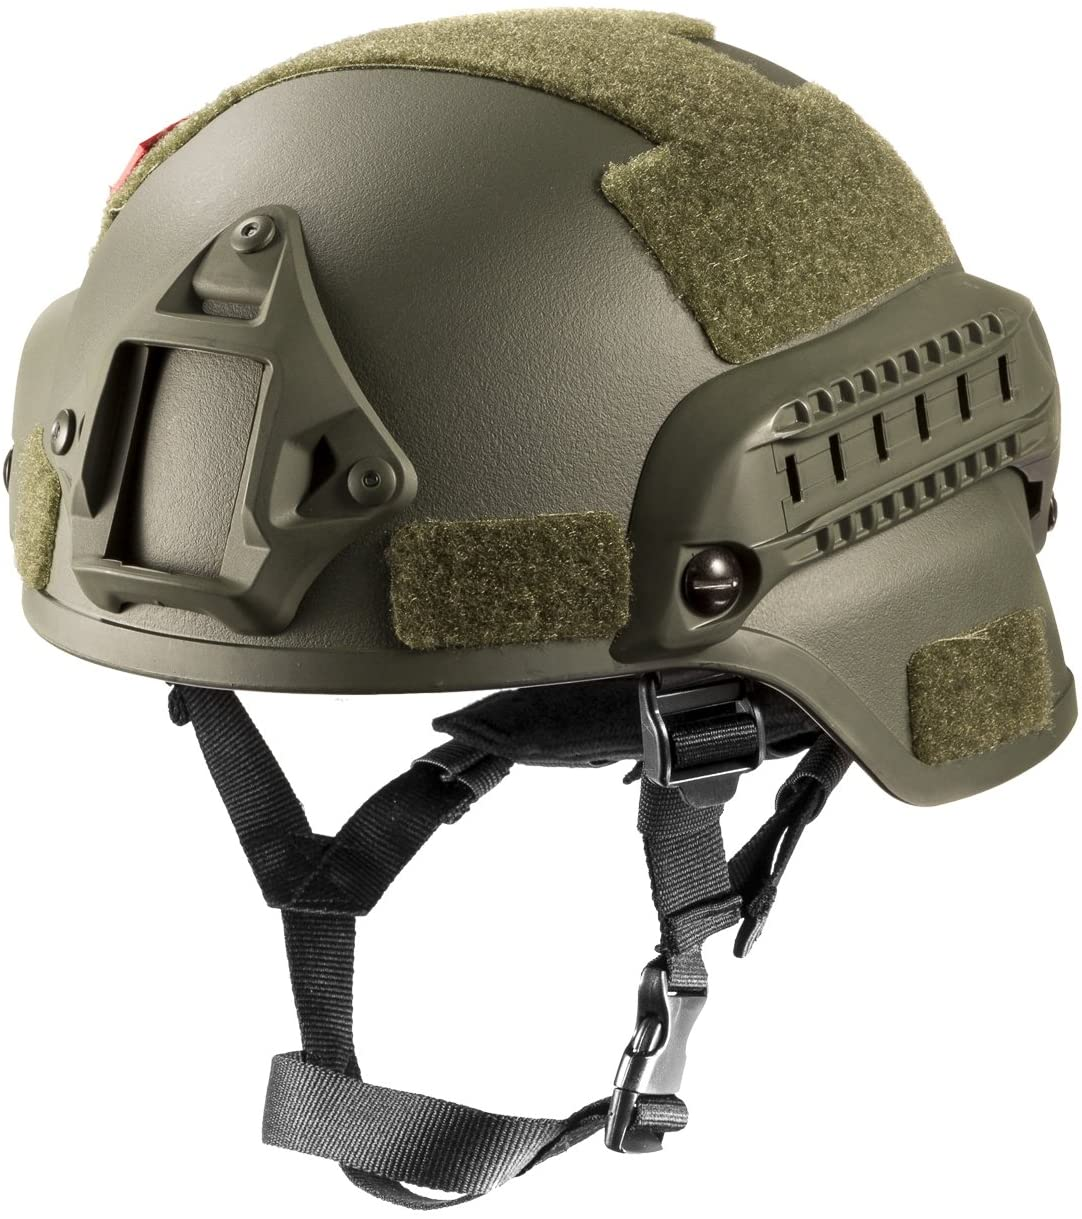 OneTigrisPhoto of the MICH 2000 Style ACH Tactical Helmet, with NVG Mount, in olive-green color.